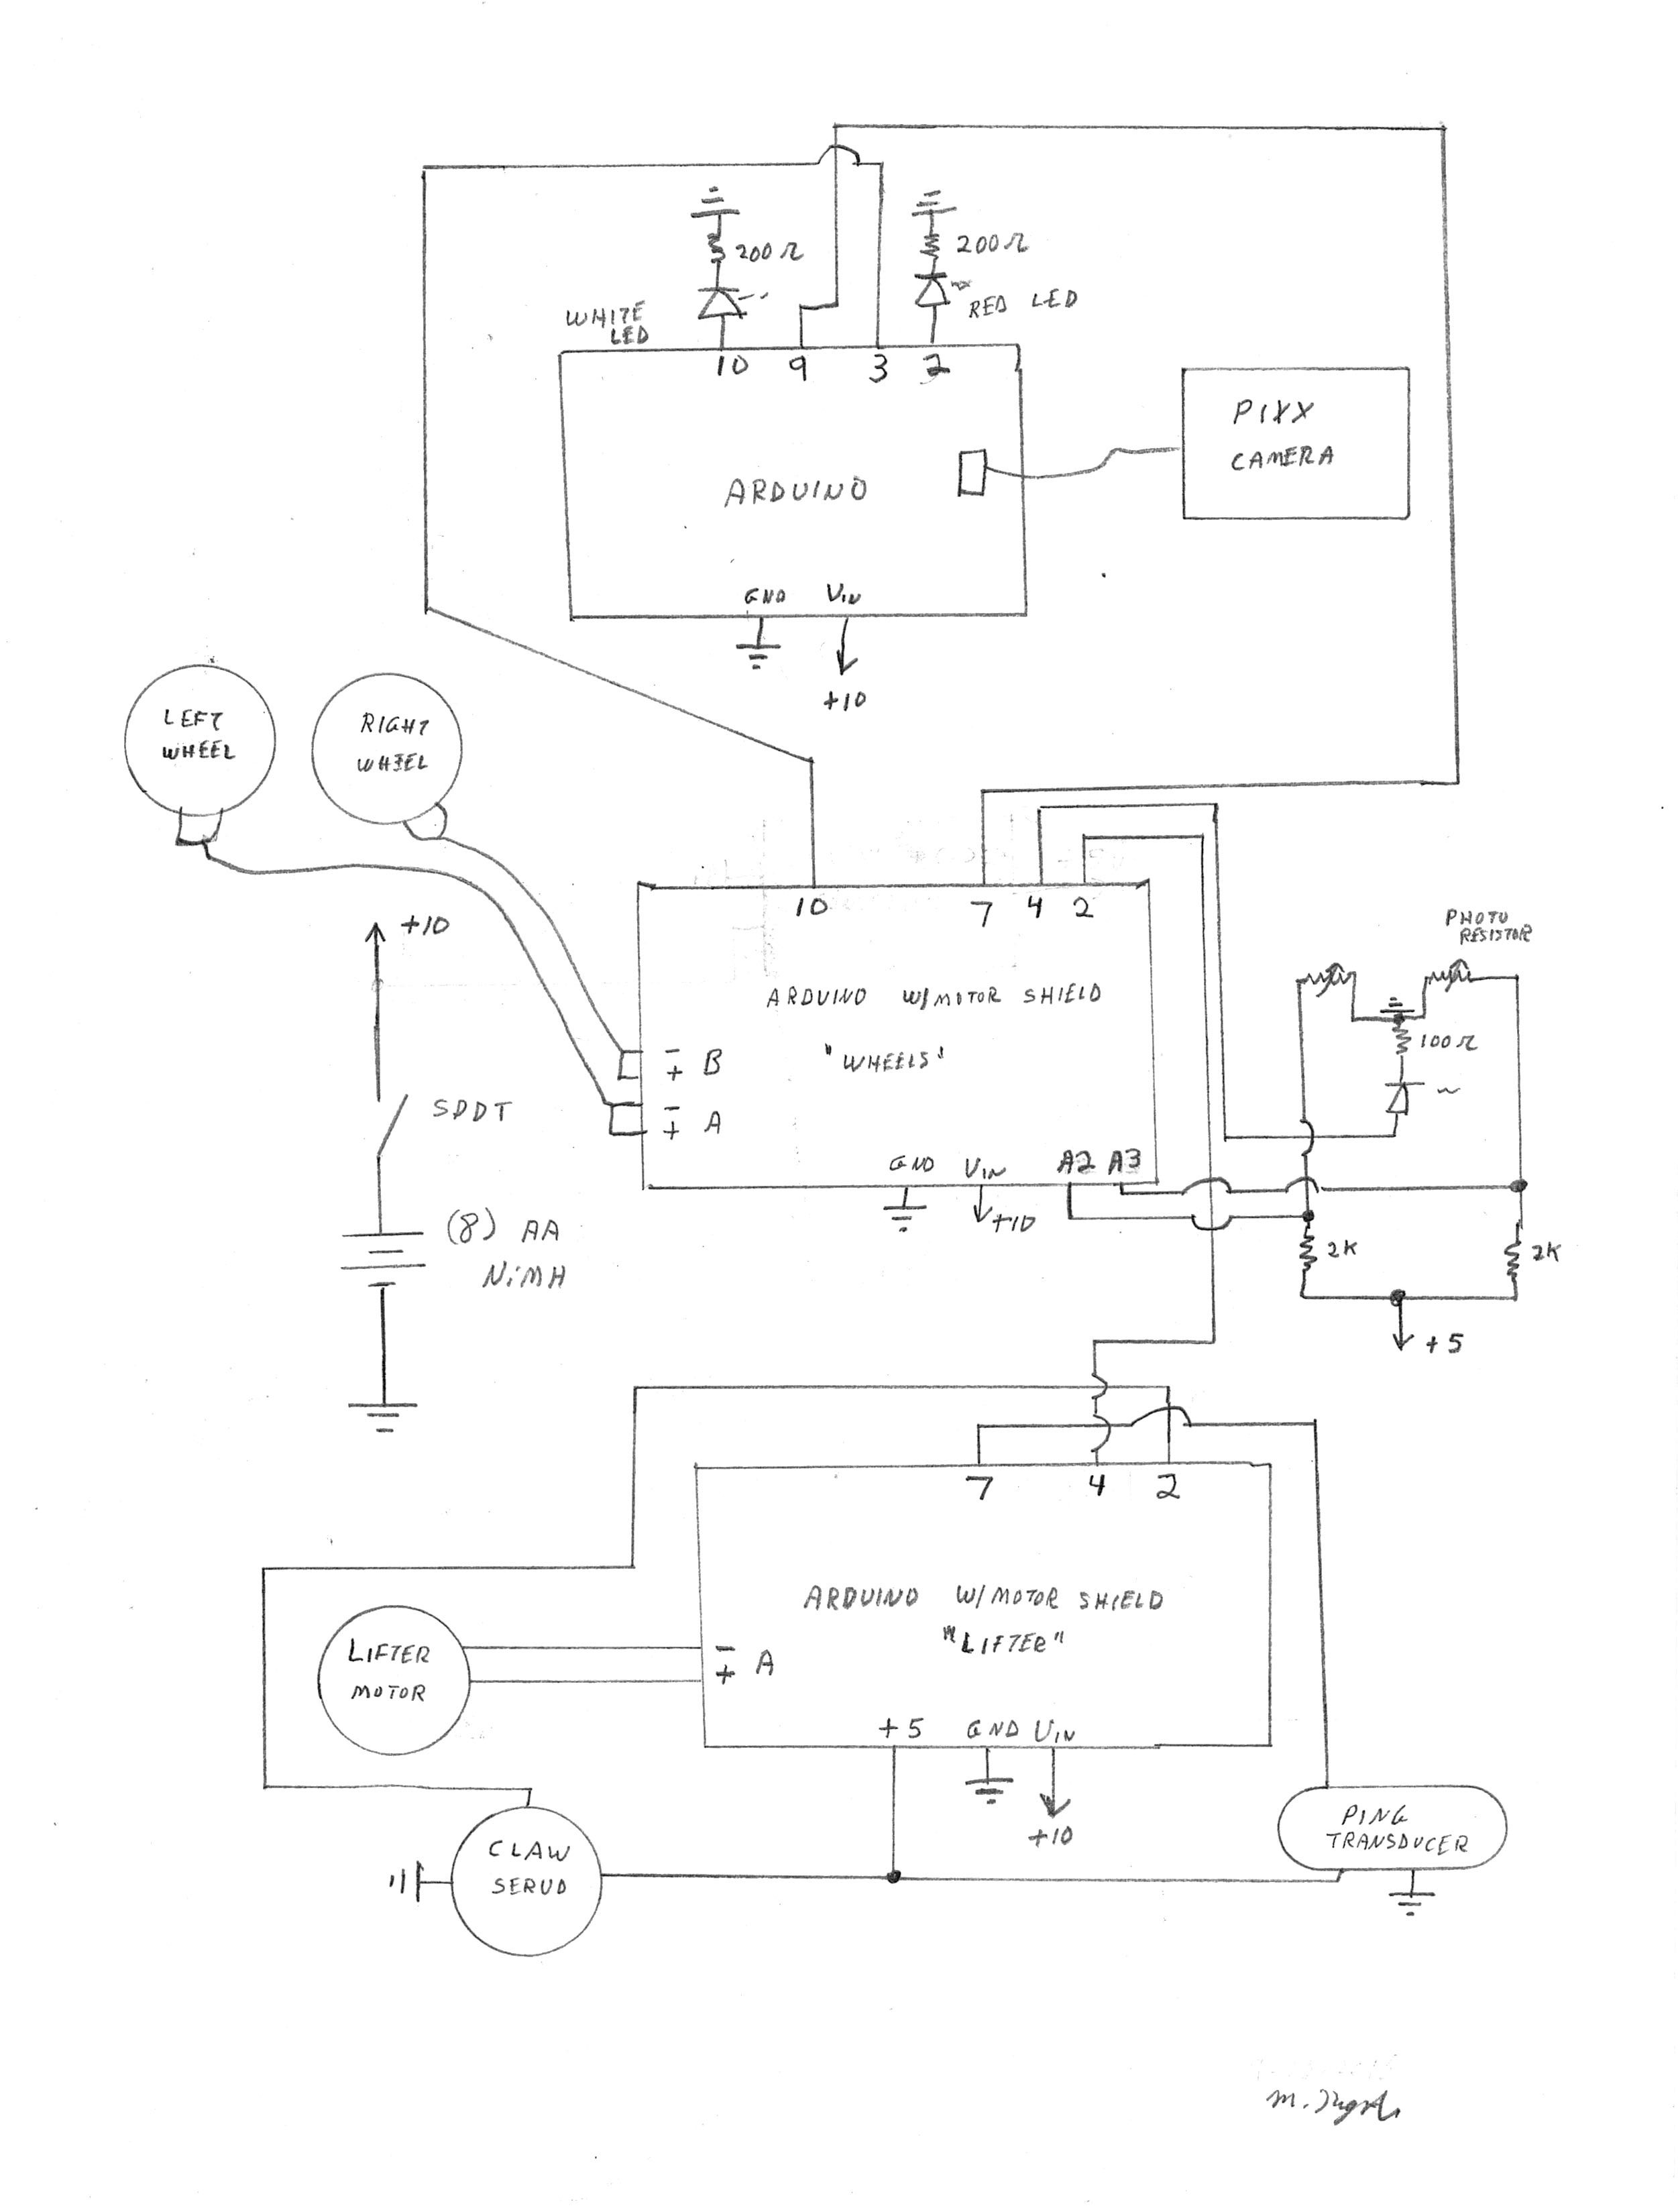 Pretty Useless Machine Two Photocells Wiring Diagram One Light I Designed A Bracket To Hold The Line Following Electronics And That Is Called Follow Files Included On This Site